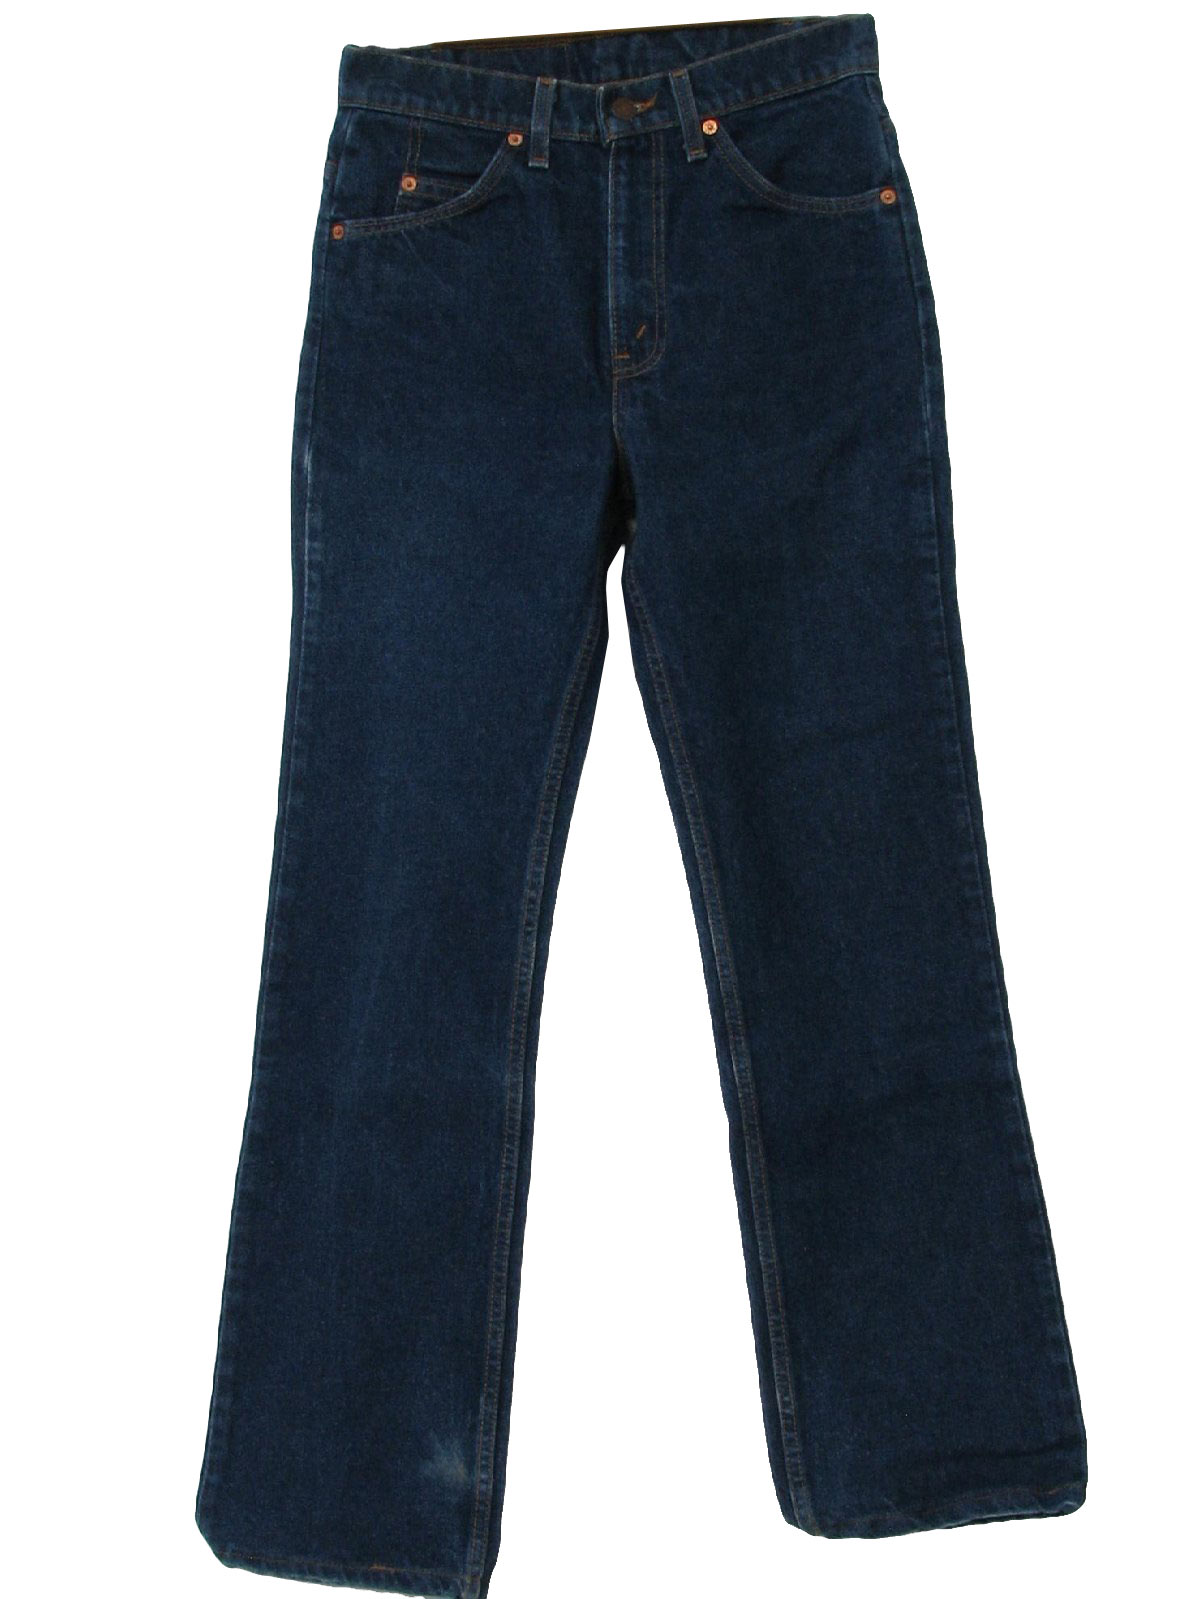 Levis Nineties Vintage Flared Pants / Flares: 90s -Levis- Mens ...